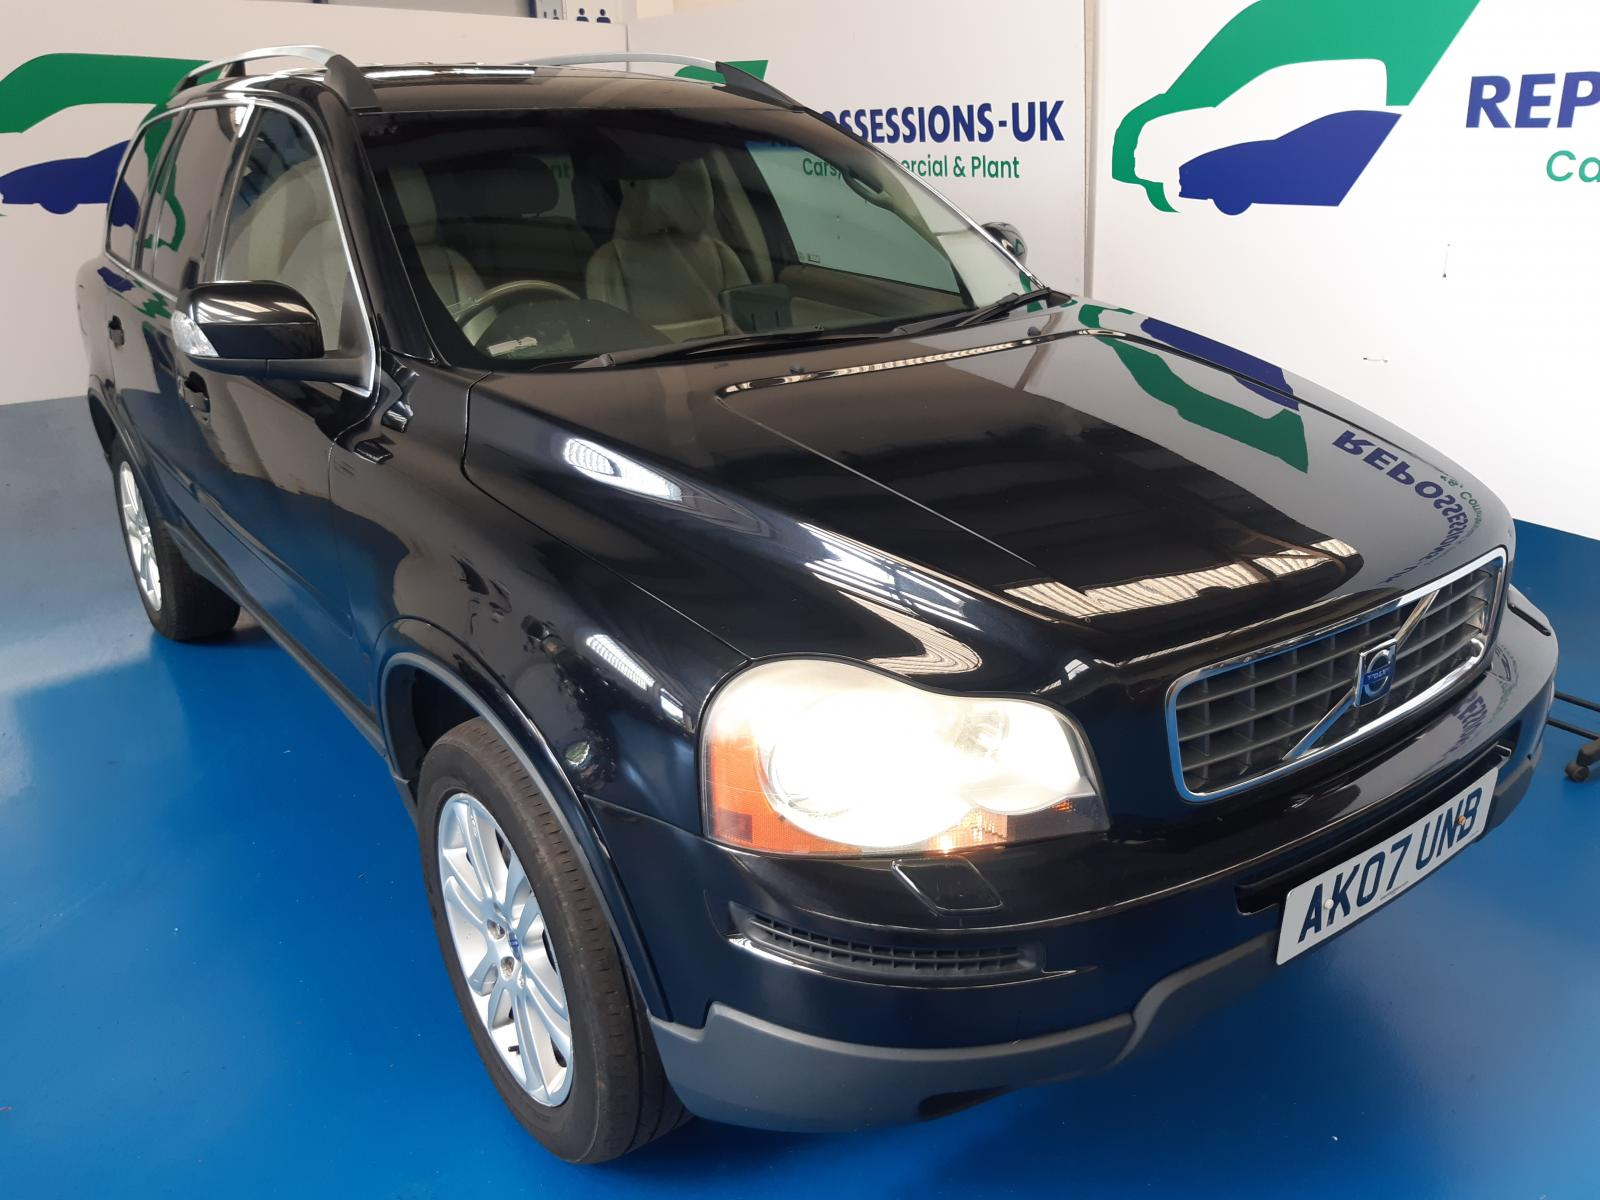 2007 VOLVO XC90 MK1 2002 TO 2014 D5 SE LUX AWD